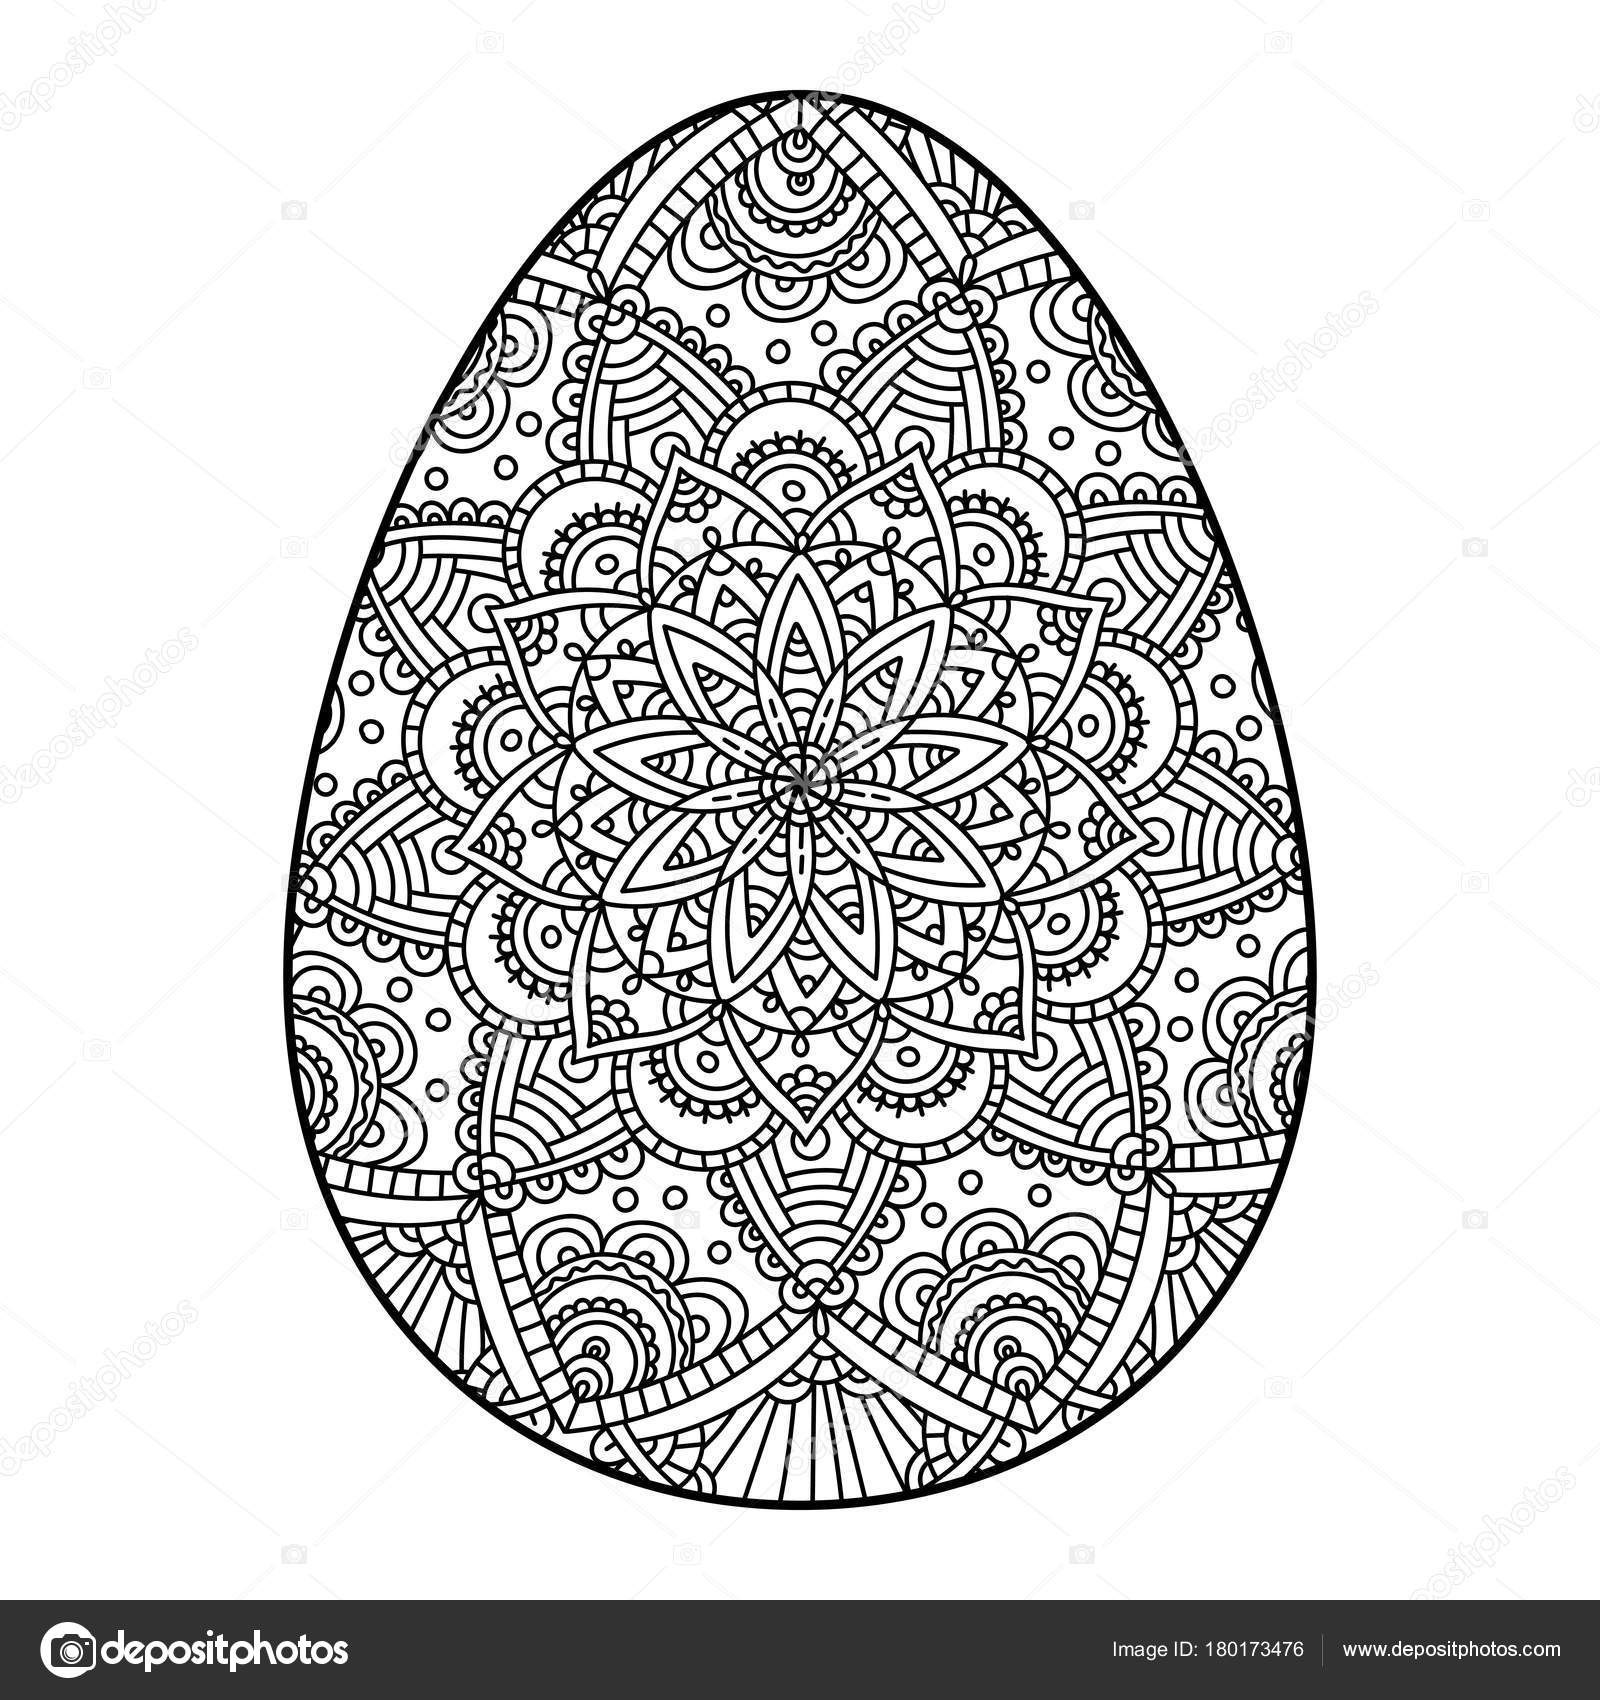 Easter Egg Mandala Vector Illustration Of An Easter Egg With A Mandala Pattern Coloring Isolated On A White Background Stock Vector C Antaya 180173476